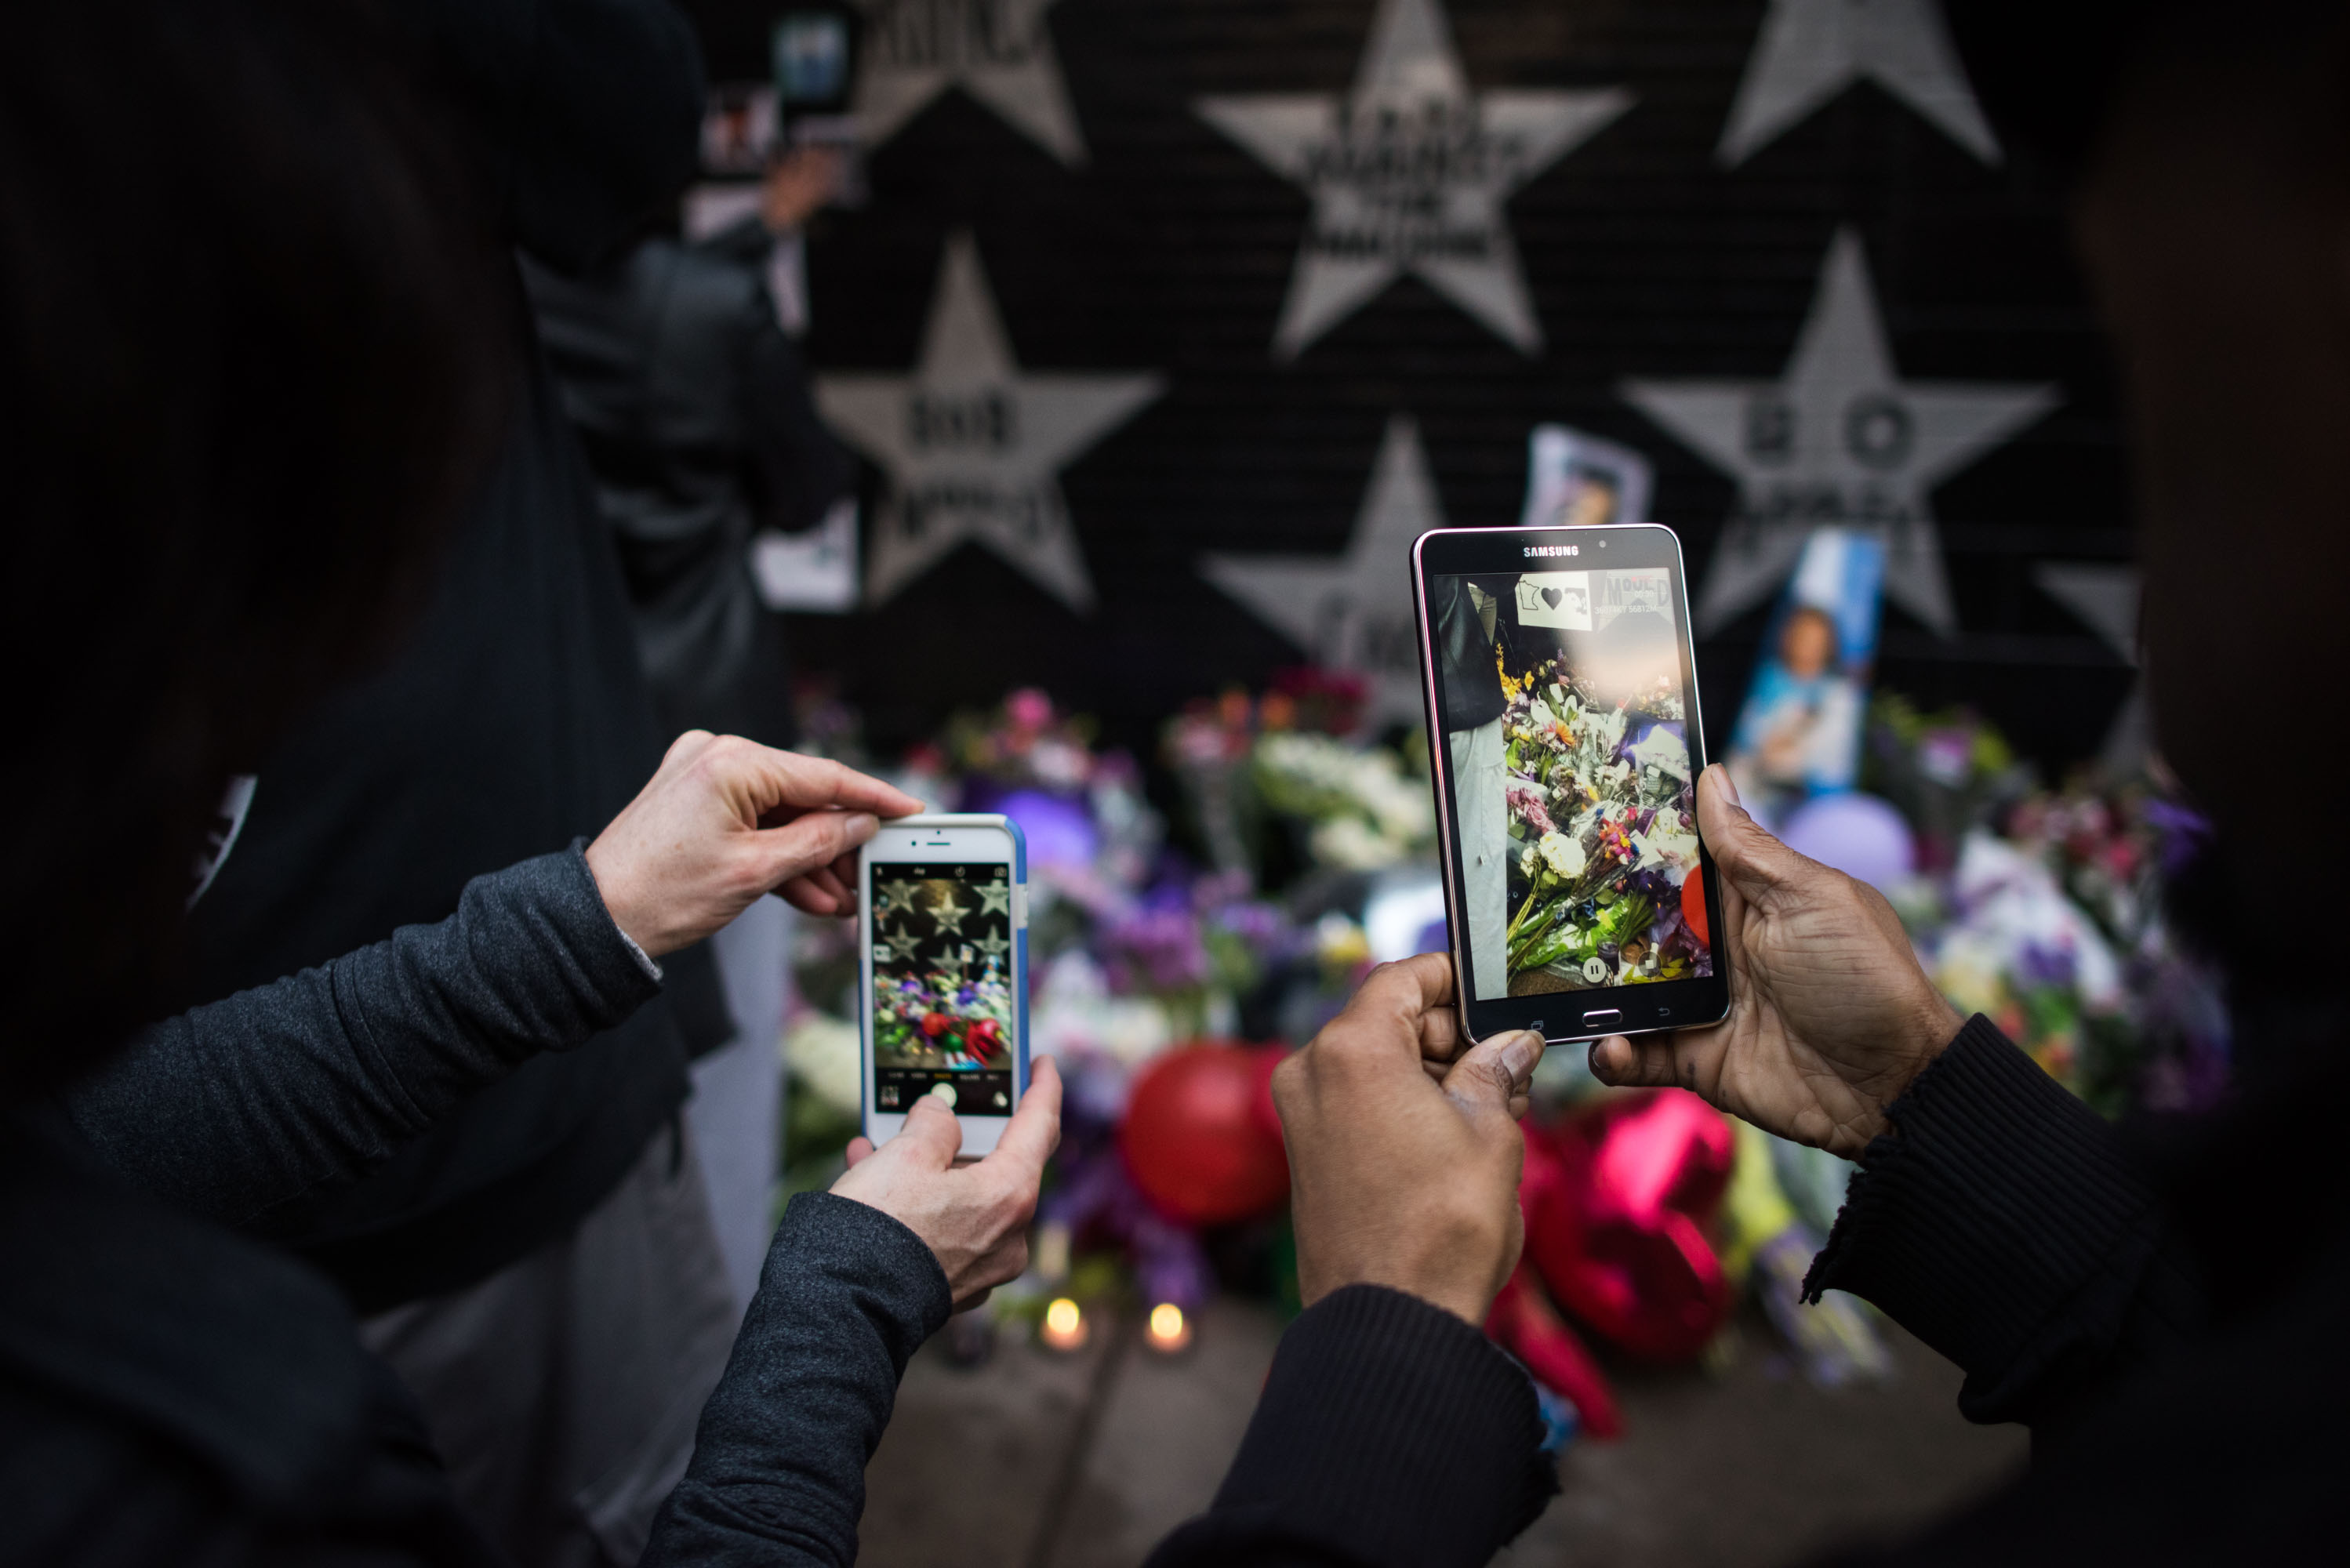 Fans take photos of the improntu memorial to Prince outside of First Ave in downtown Minneapolis. April 21st, 2016.